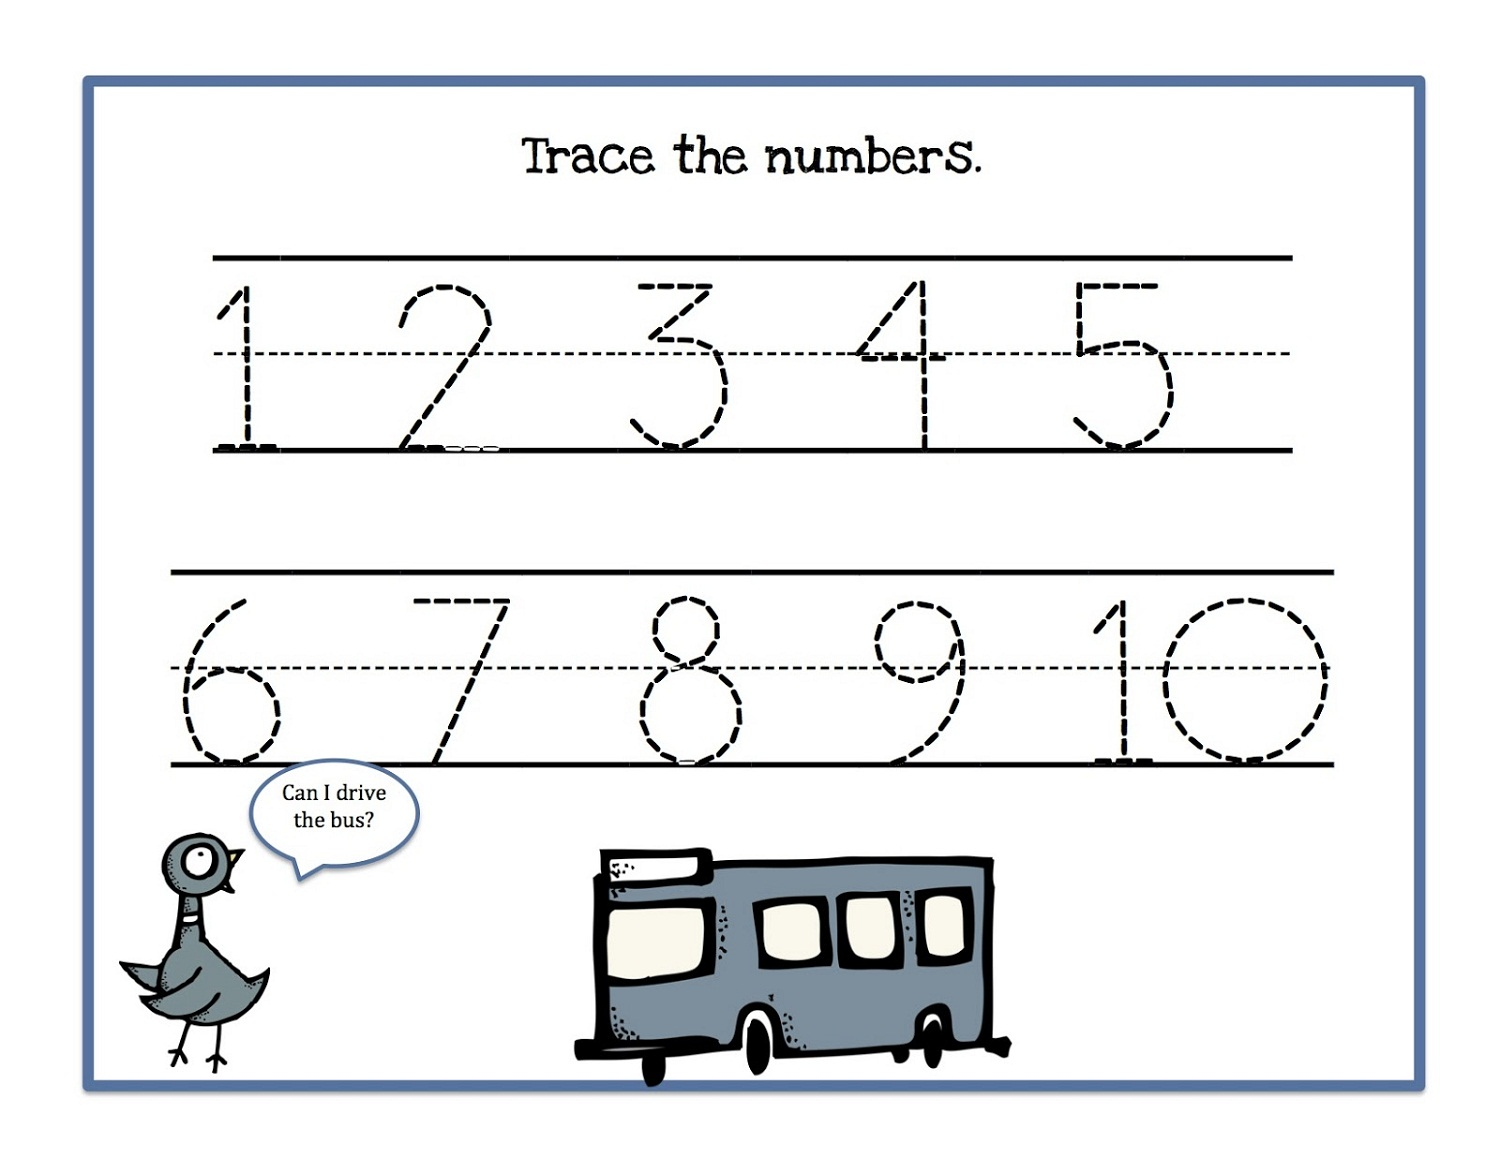 tracing numbers 1-10 for kids